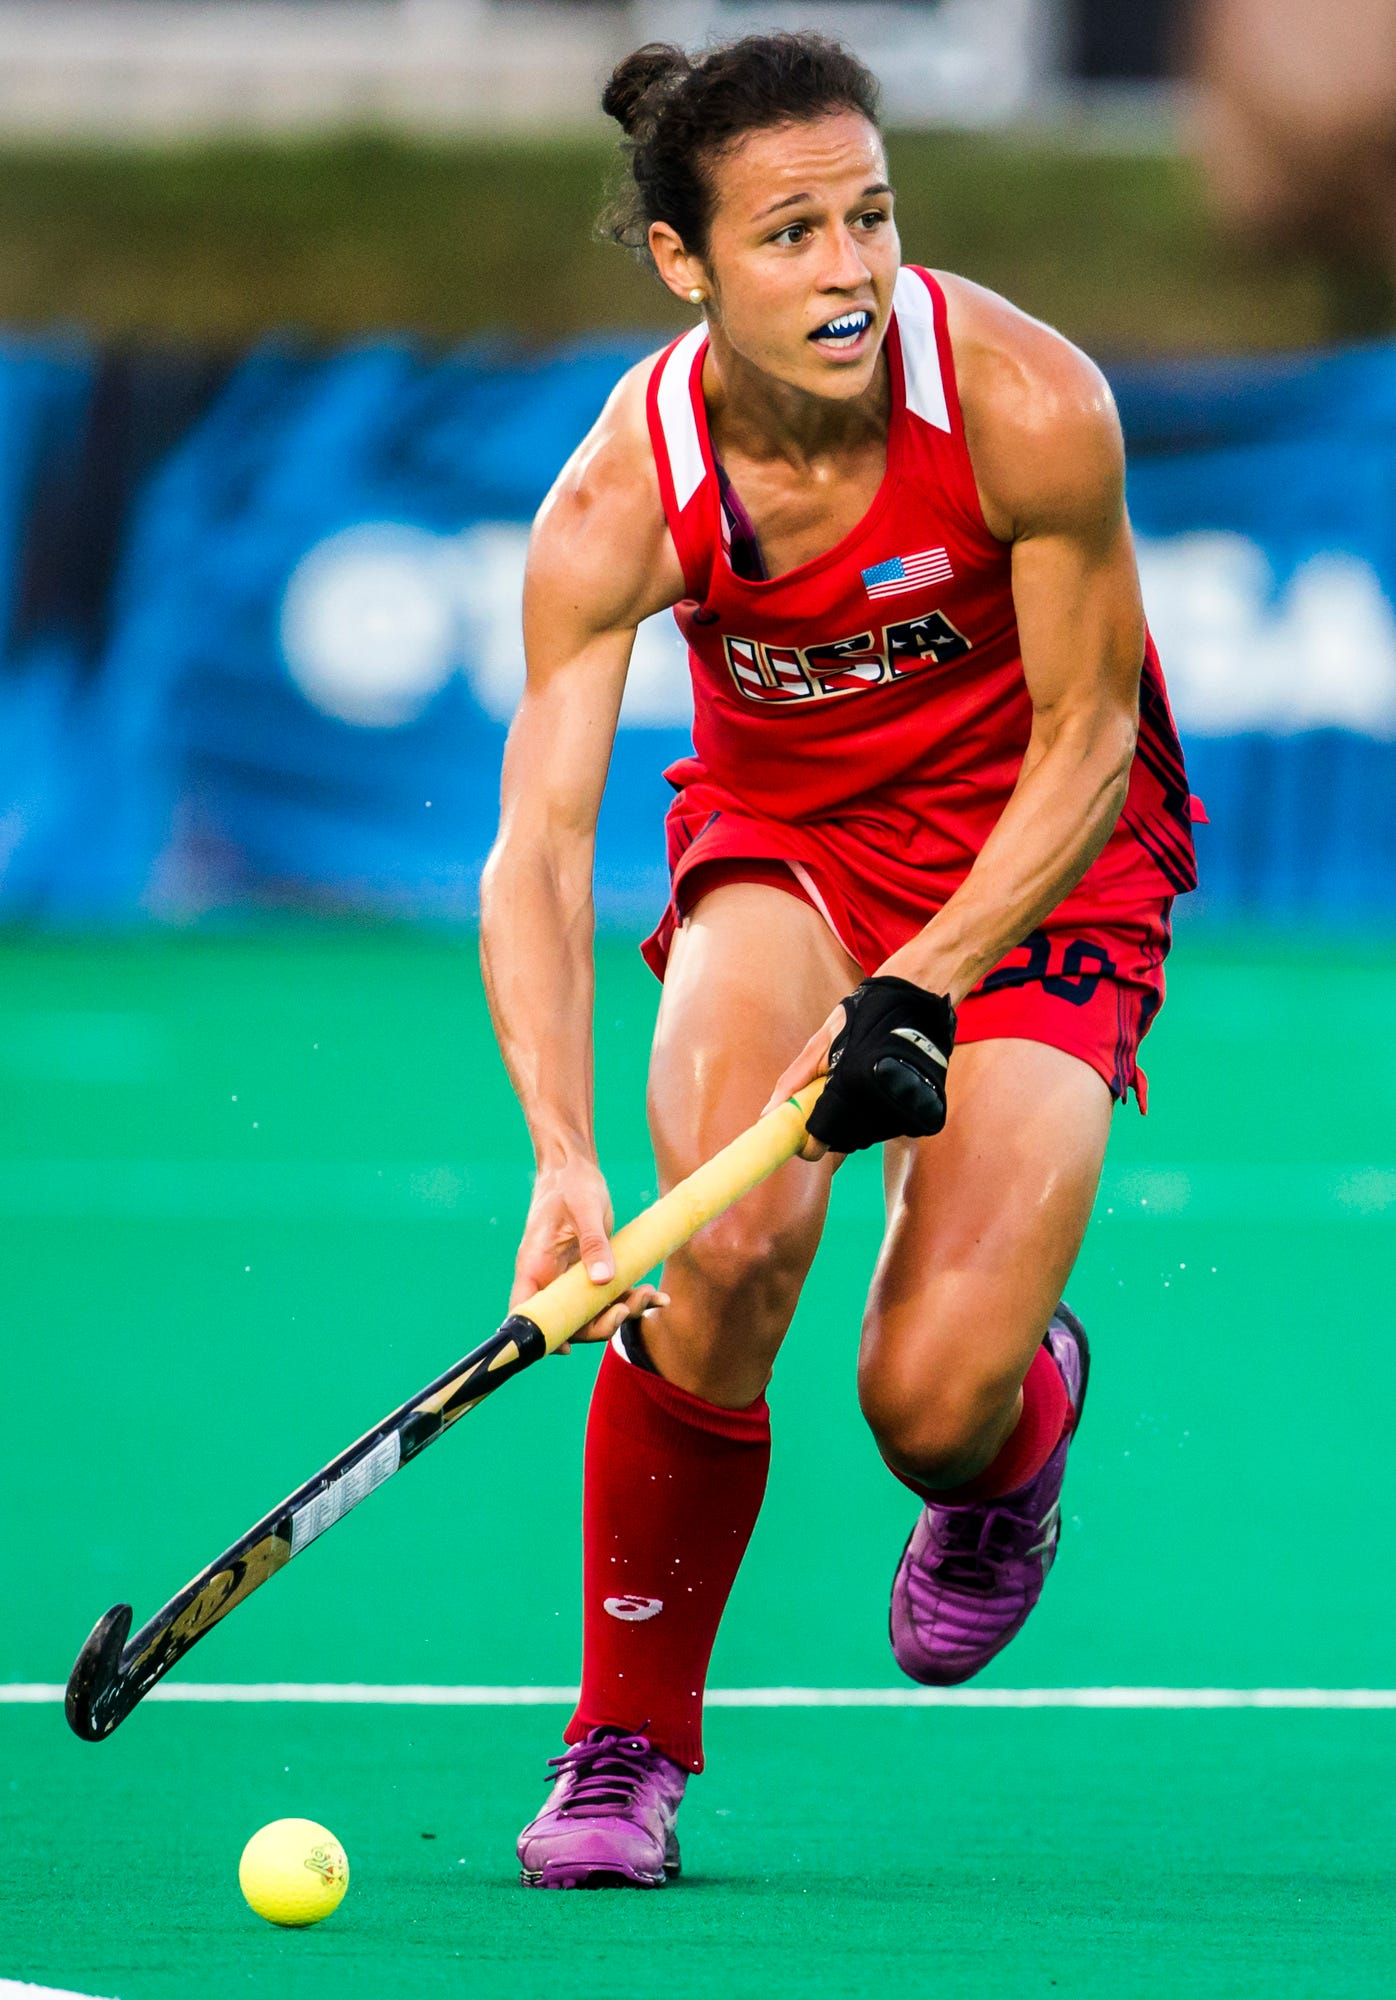 Caitlin Van Sickle plays in the U.S. Women's Field Hockey team's 3-2 win over India in Lancaster, Pa. on Monday evening, July 18.